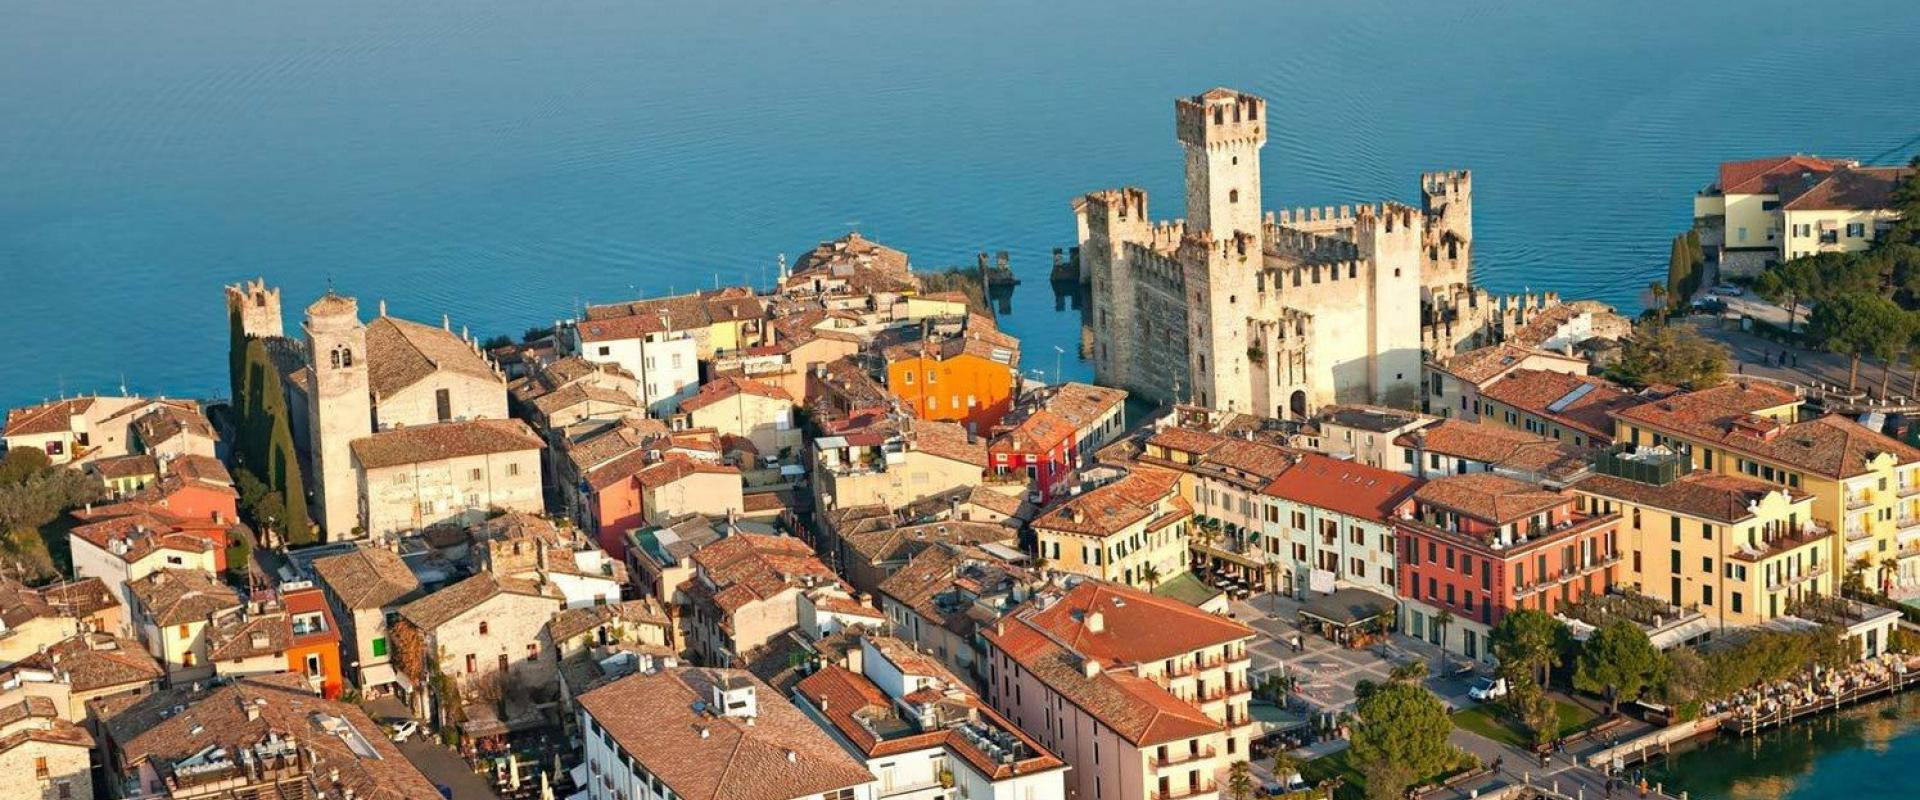 Guided tour of Sirmione